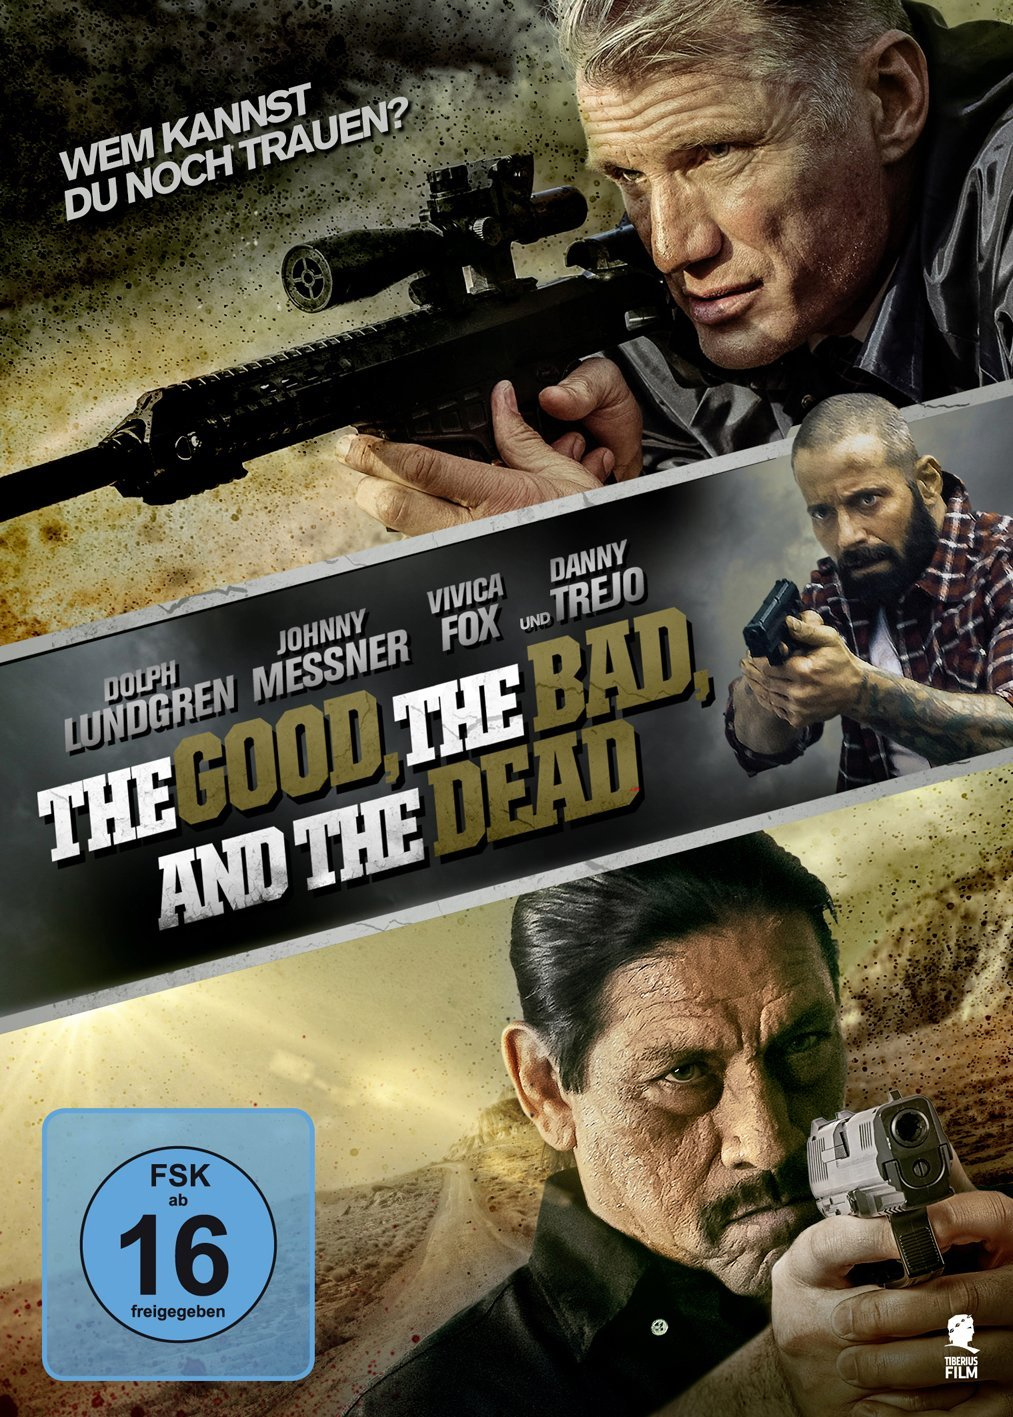 The Good The Bad And The Dead Film 2015 Filmstarts De